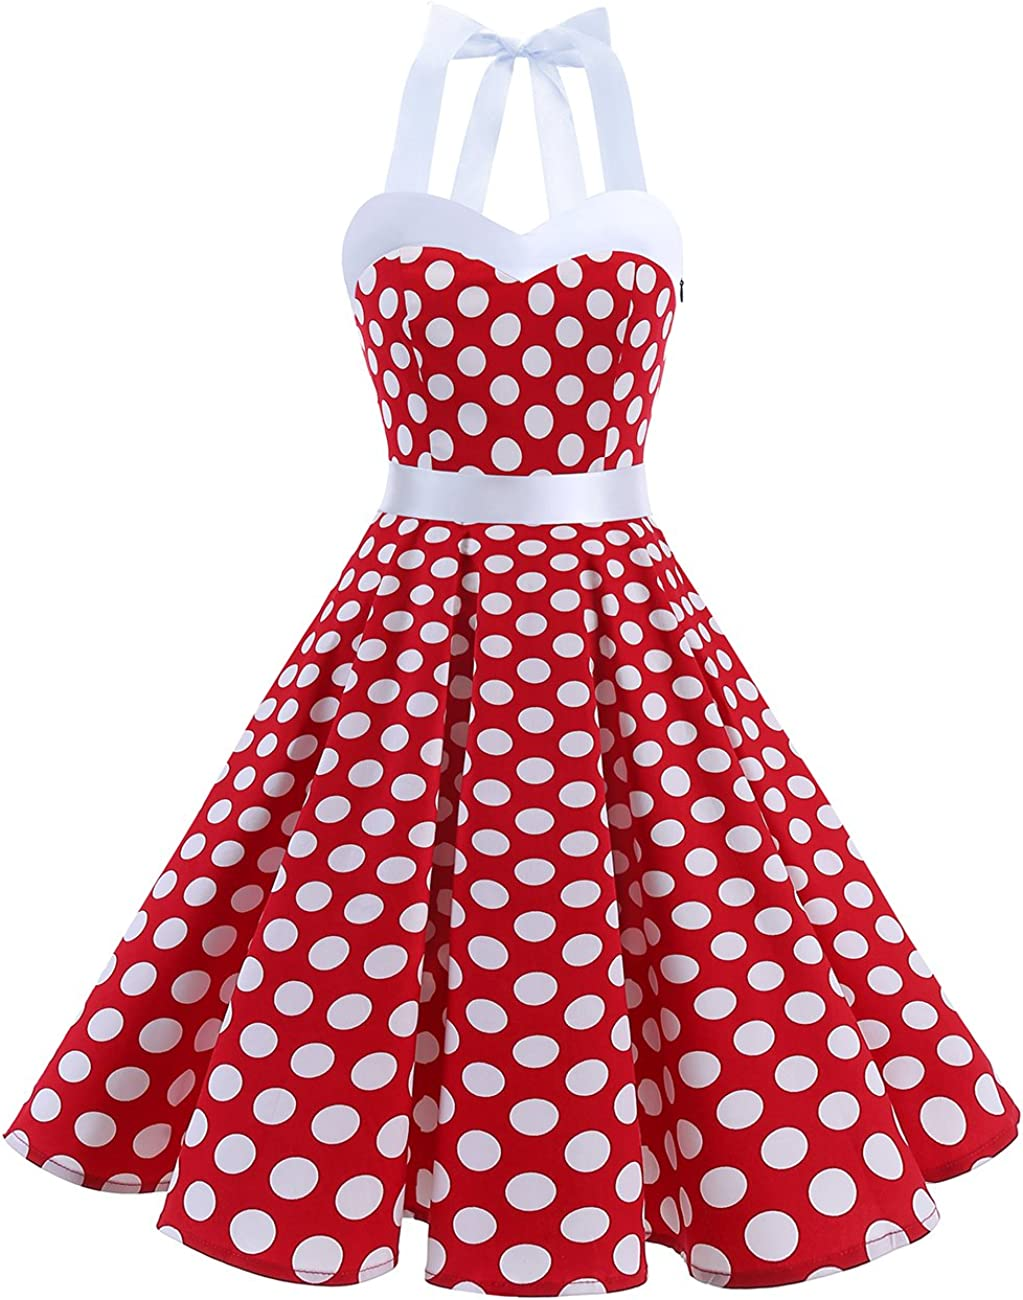 TALLA XL. Dresstells® Halter 50s Rockabilly Polka Dots Audrey Dress Retro Cocktail Dress Red White Dot XL